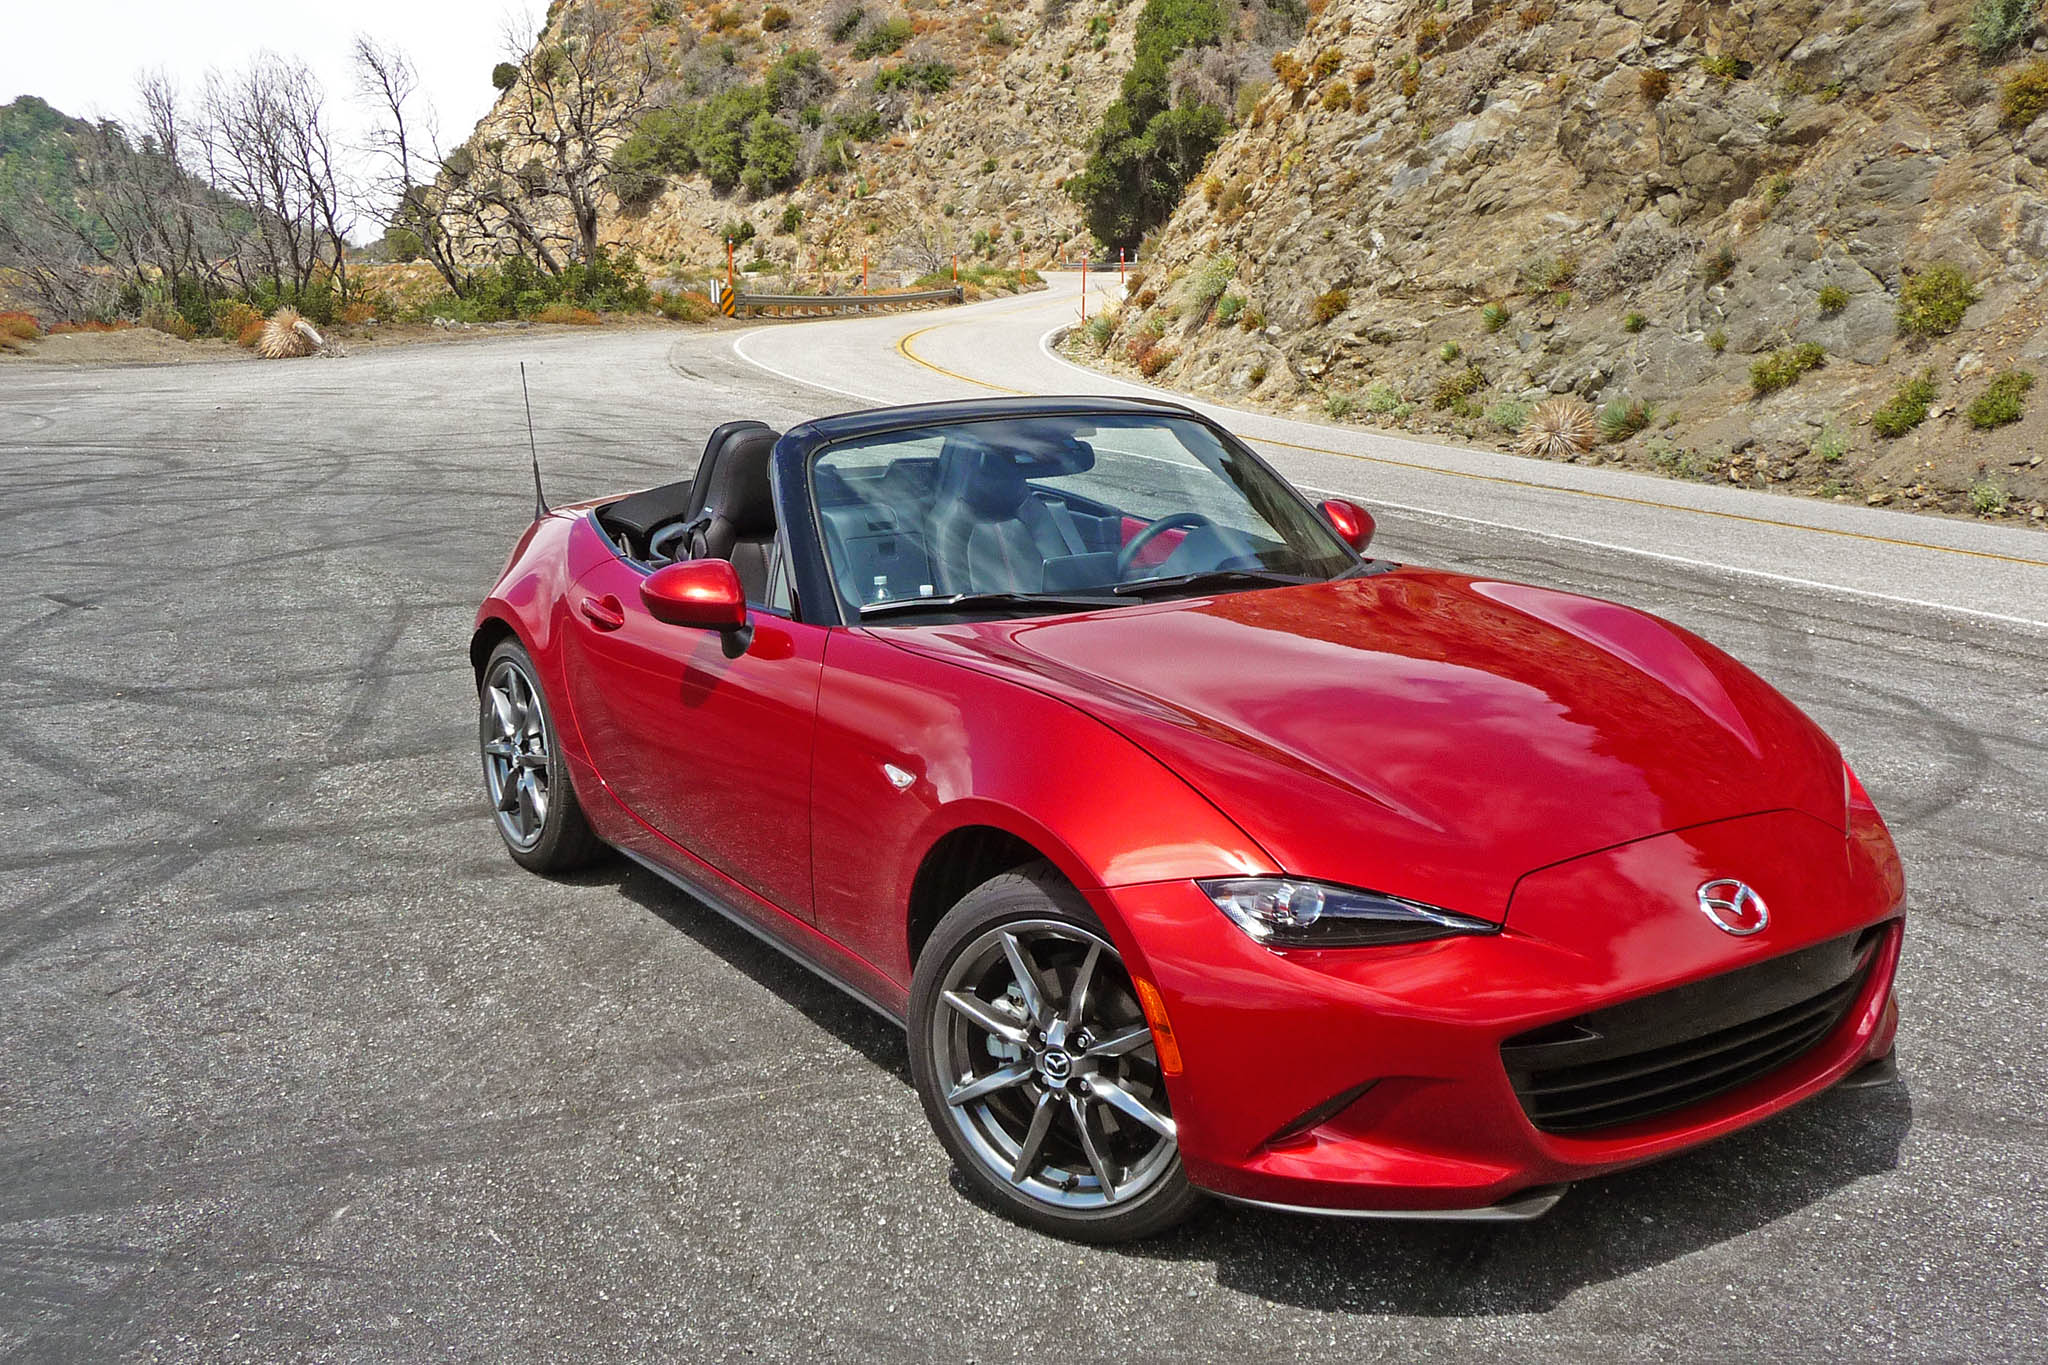 miata information new mazda mx pictures wallpaper specs